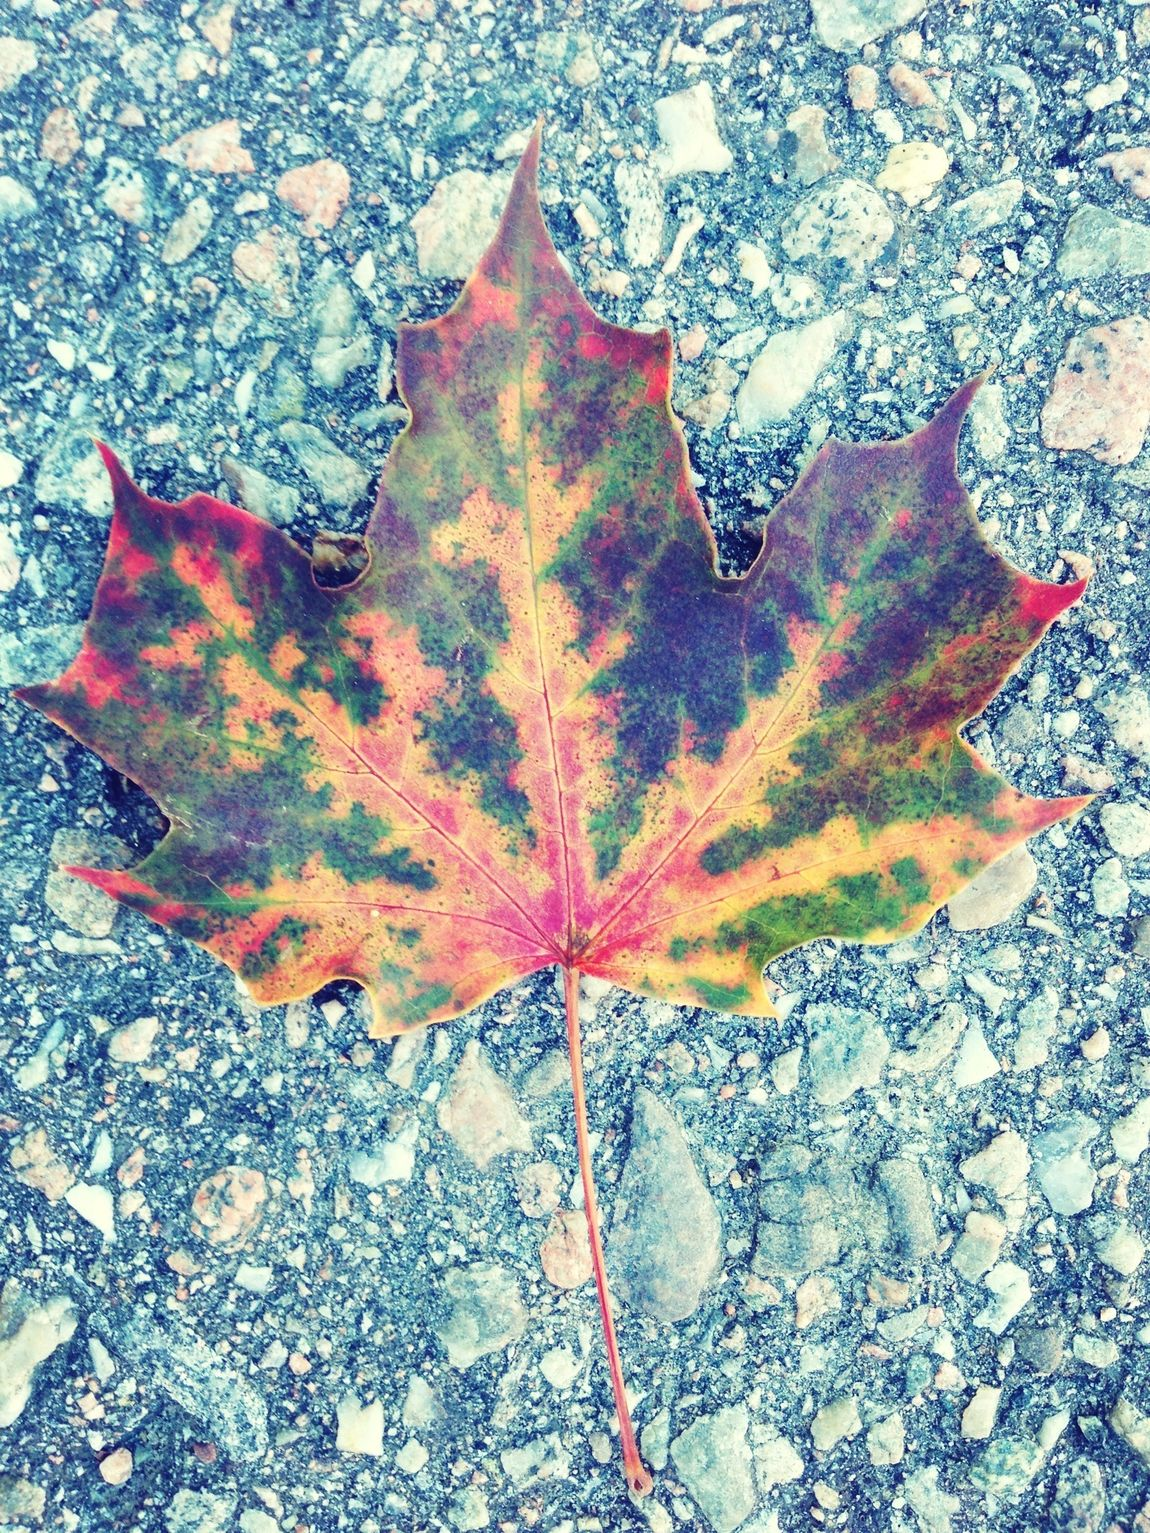 autum is here